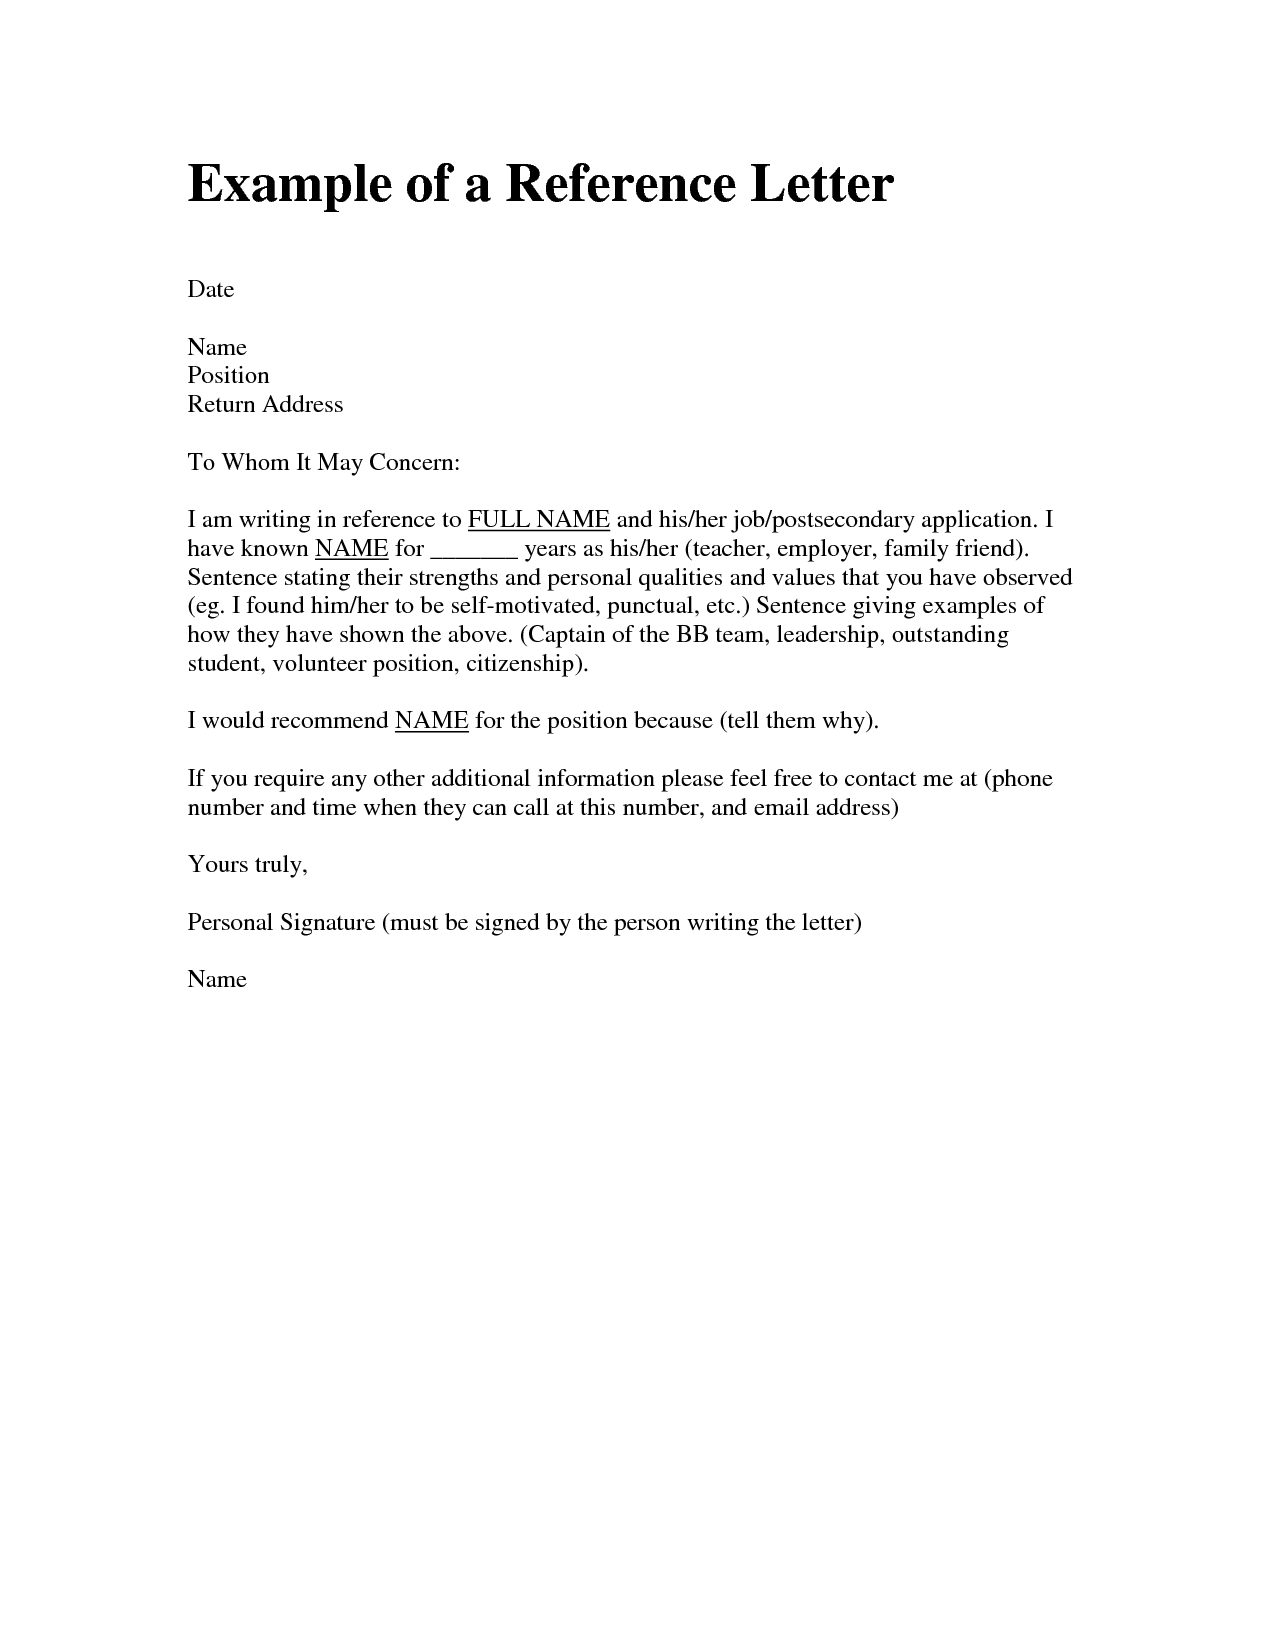 Sample Personal Character Reference Letter For A Friend inside proportions 1275 X 1650